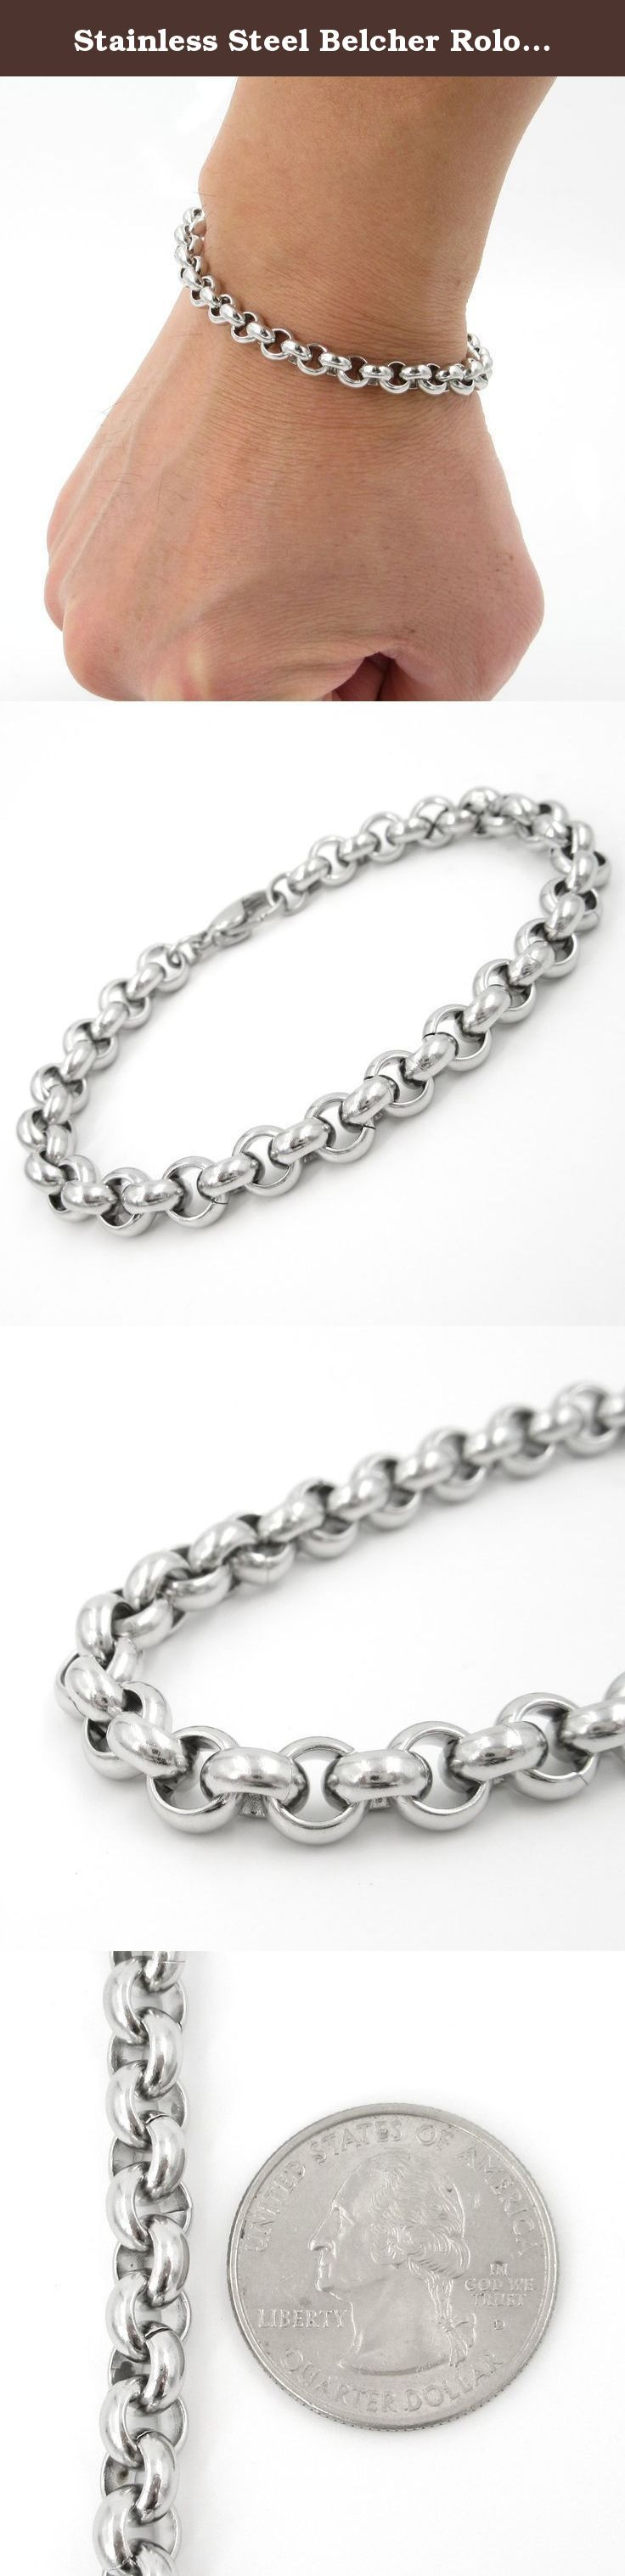 Stainless Steel Belcher Rolo Chain Men Bracelet 7mm 7inch. One stainless steel men bracelet. Sturdy rolo chain link design, lobster clasp. Links 7mm wide, different length available. Comes with a gift bag. ** The coin in the picture is a US quarter dollar for size reference only and not included.